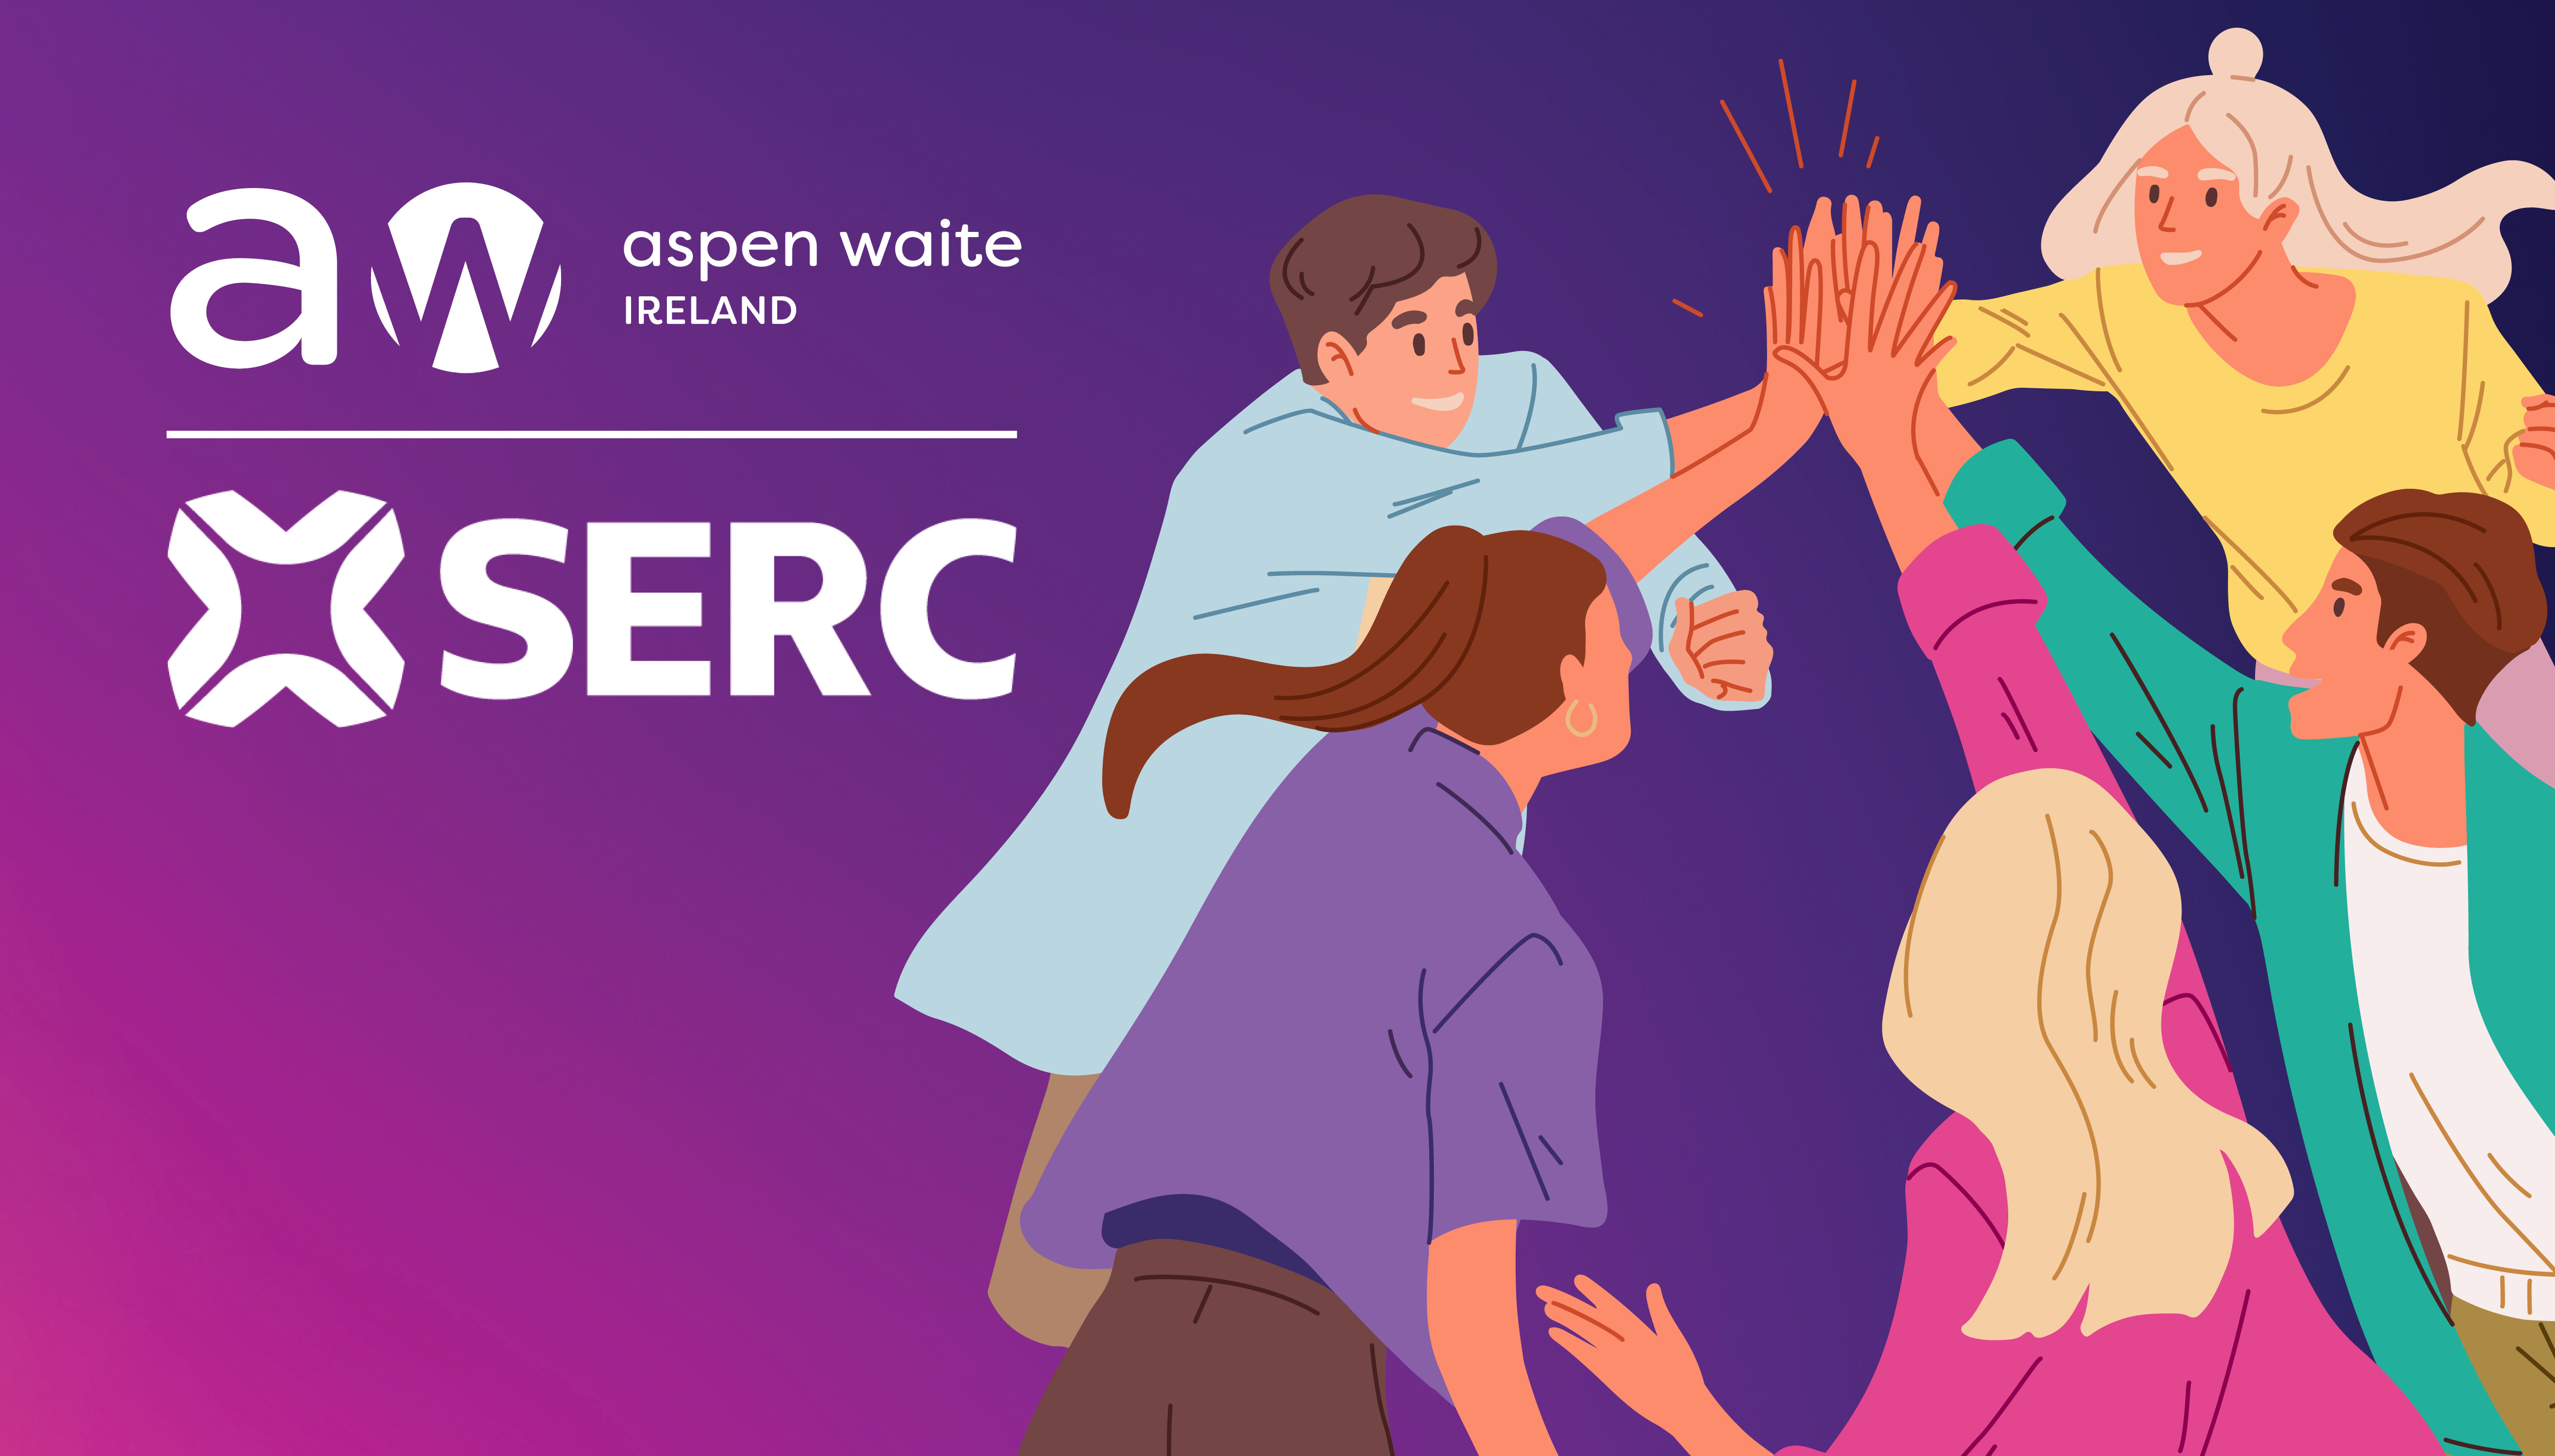 Aspen Waite Ireland partners up with South Eastern Regional College